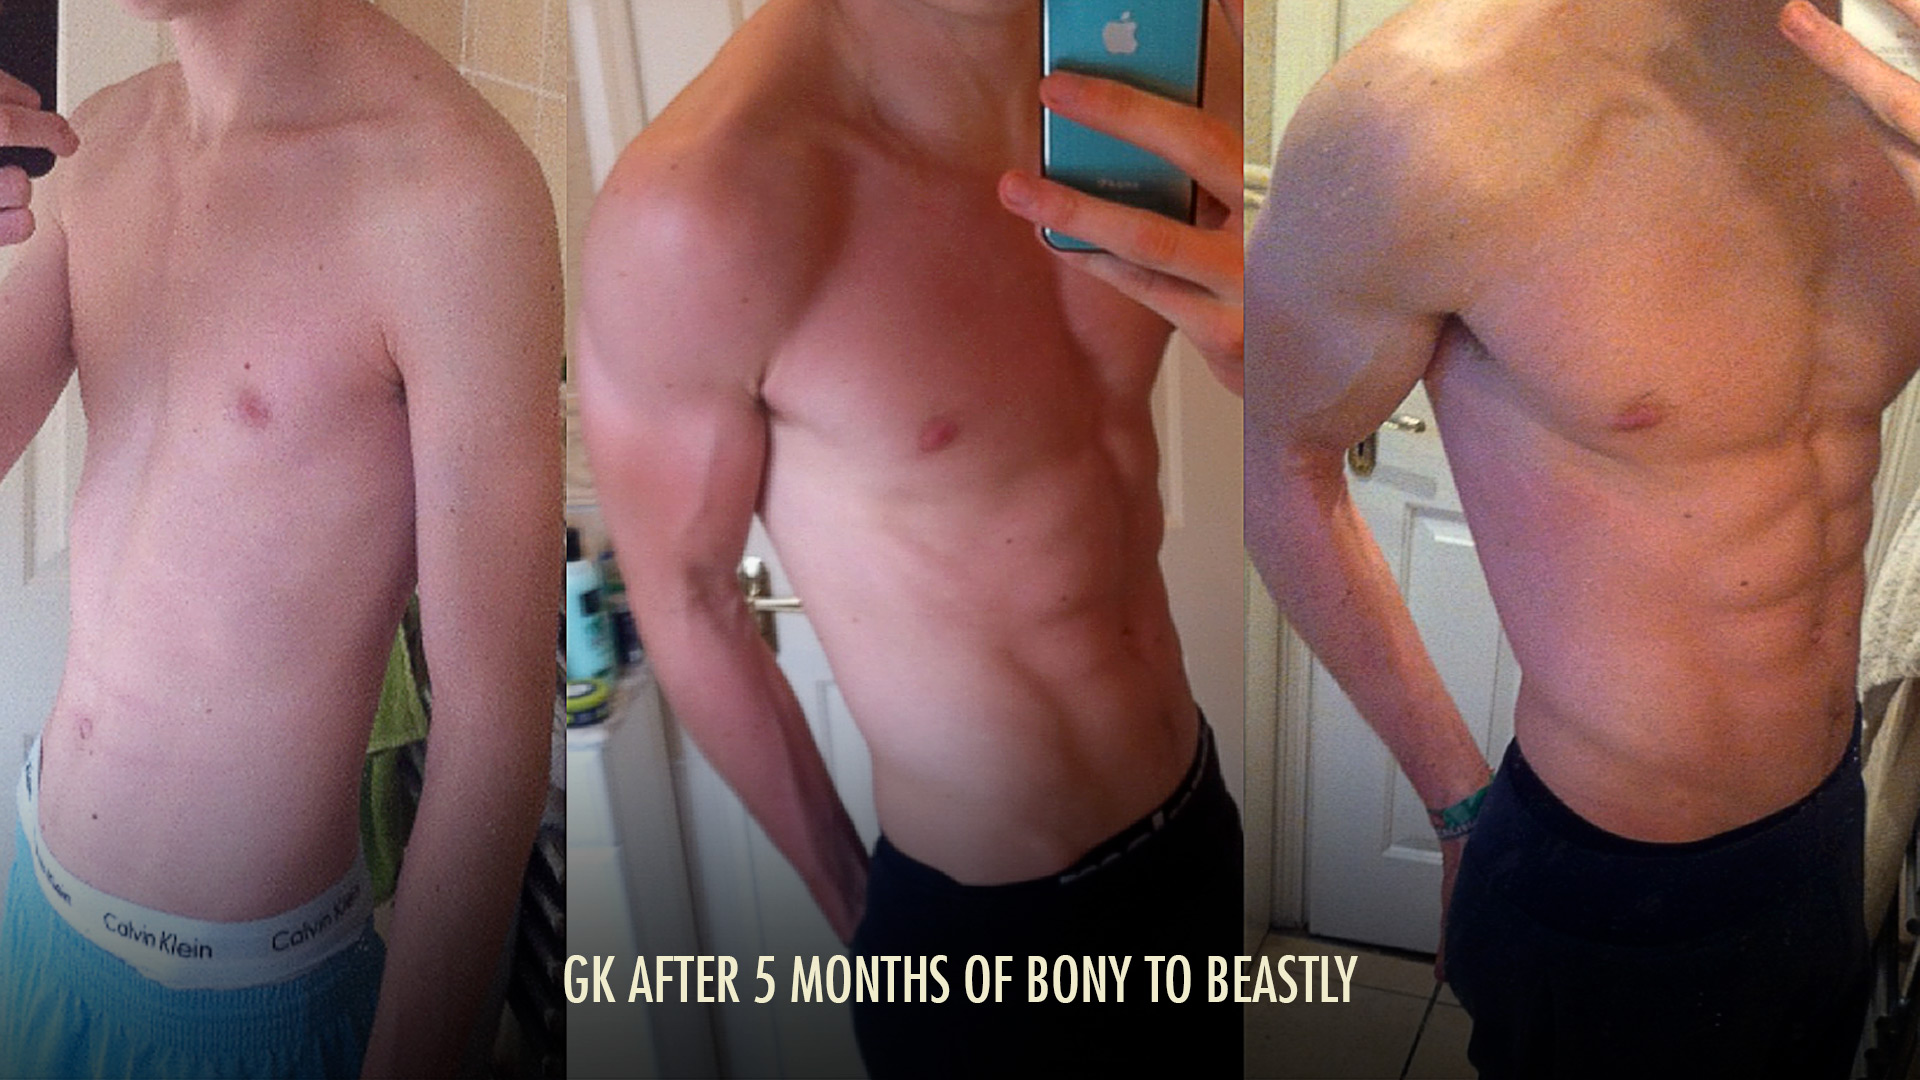 Bony to Beastly Ectomorph Transformation Skinny Hardgainer Genetics